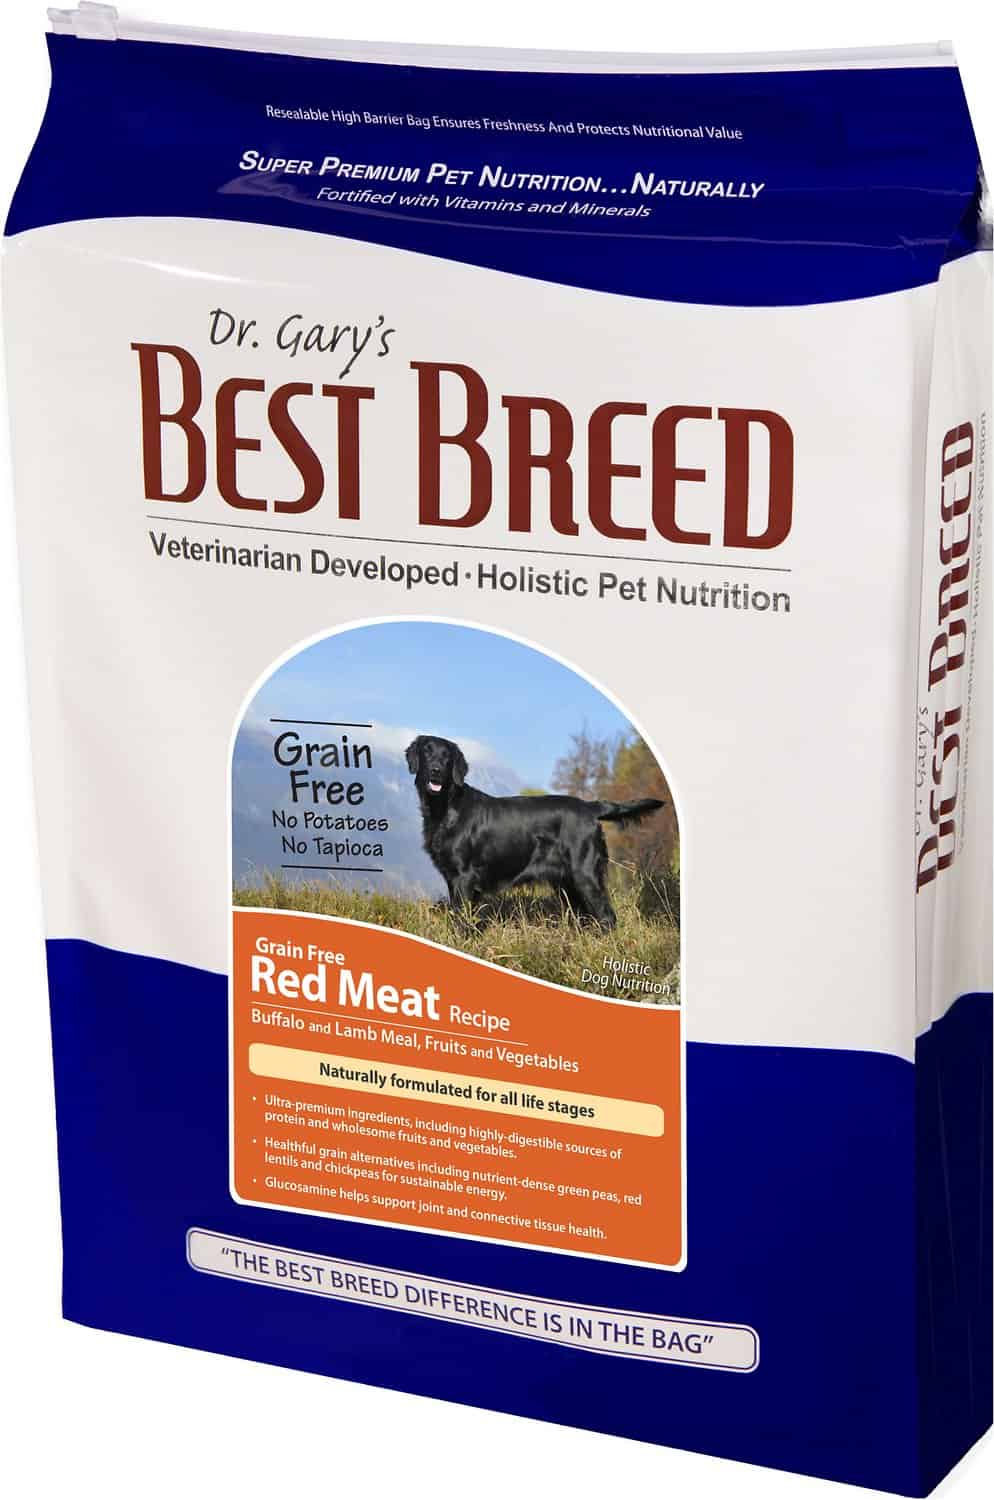 Dr. Gary's Best Breed Dog Food Review 2021: Best Holistic Pet Food? 16